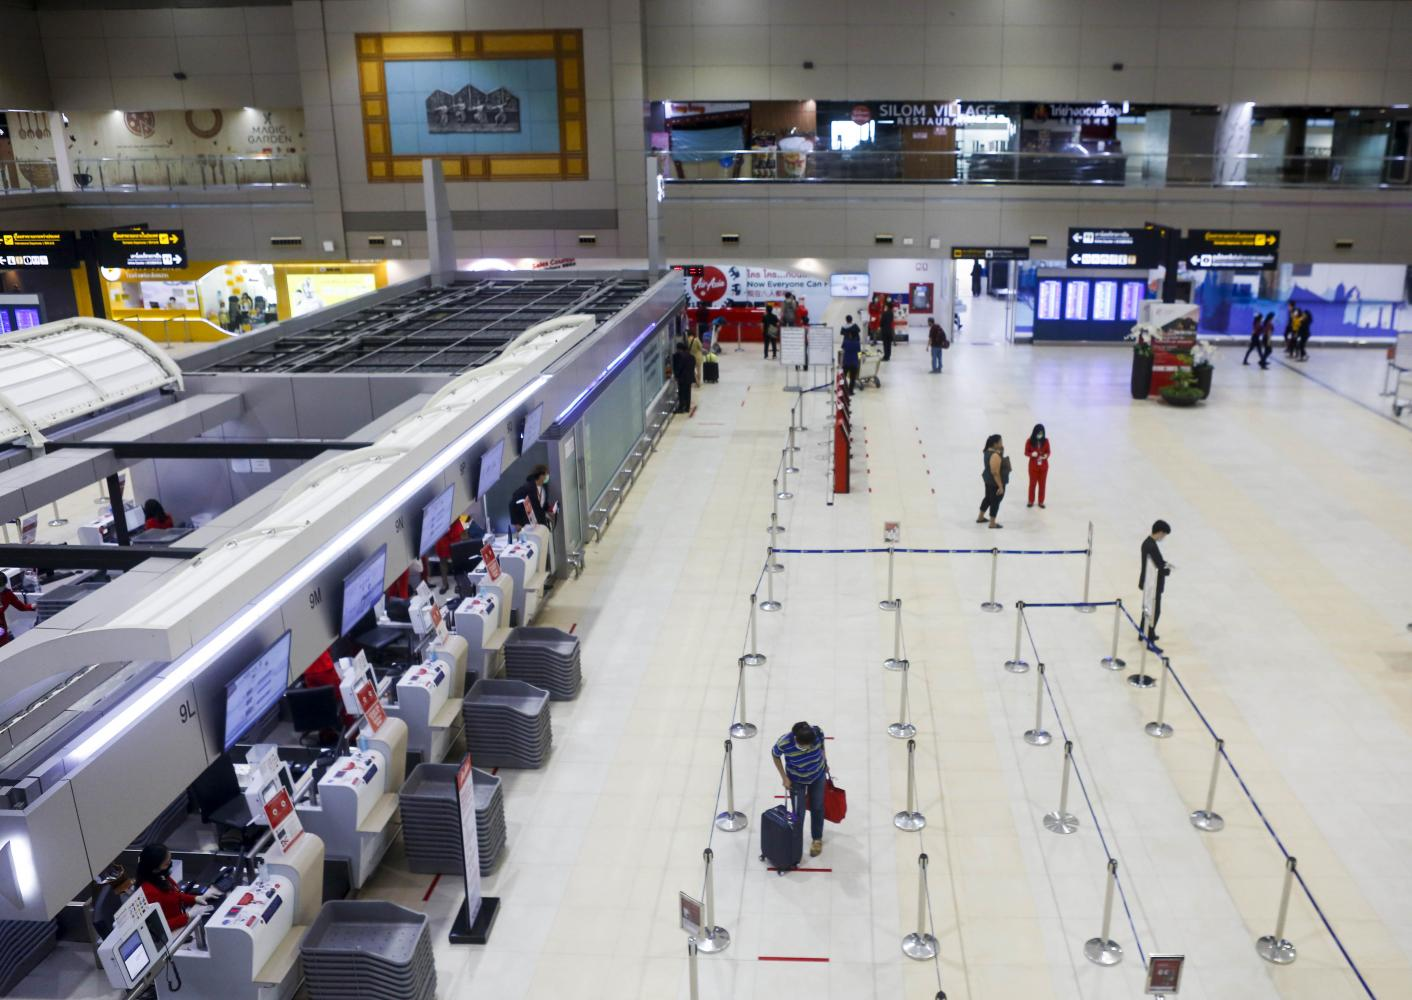 Don Mueang airport remains nearly empty this week amid international air travel restrictions. (Photo by Pattarapong Chatpattarasill)